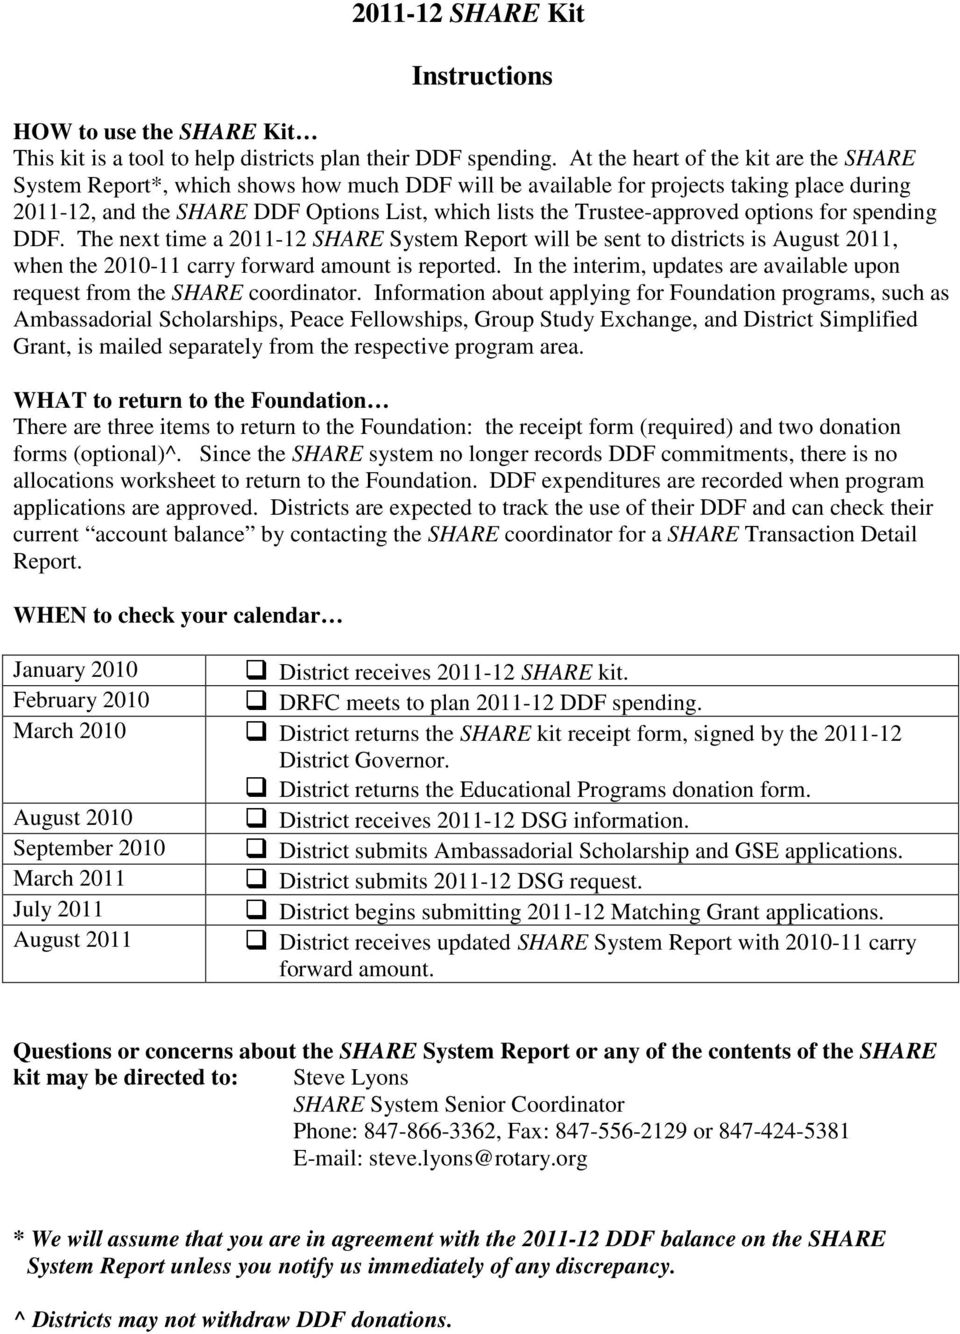 Trustee-approved options for spending DDF. The next time a 2011-12 SHARE System Report will be sent to districts is August 2011, when the 2010-11 carry forward amount is reported.